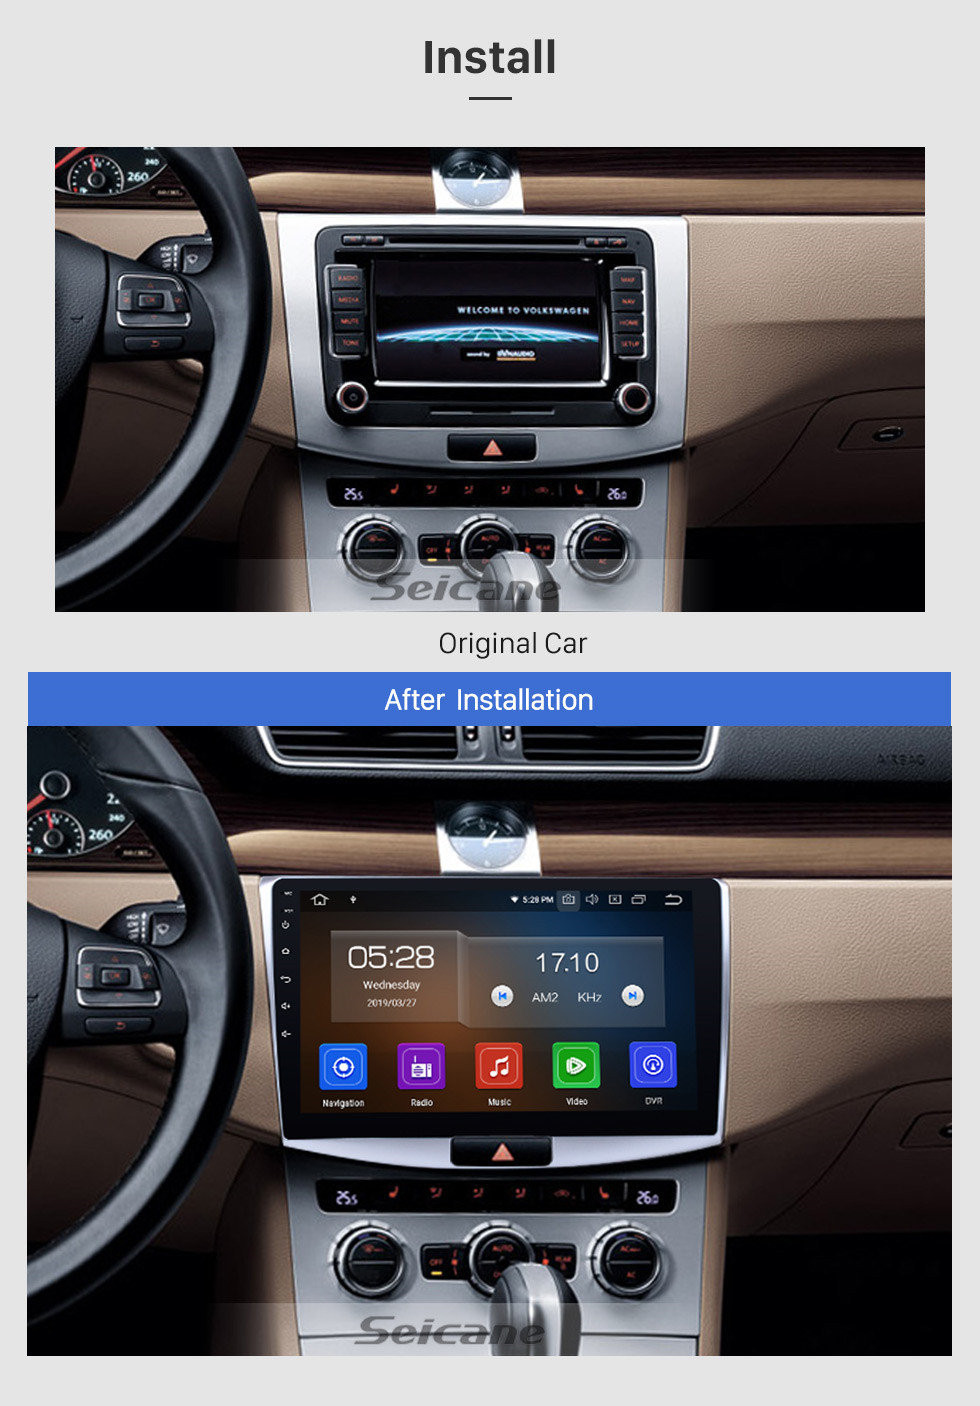 Seicane 10.1 inch 2012 2013 2014 2015 VW Volkswagen Passat MAGOTAN Android 10.0 HD 1024*600 Touchscreen GPS Radio Car Stereo with Bluetooth RDS Wifi 4G TPMS